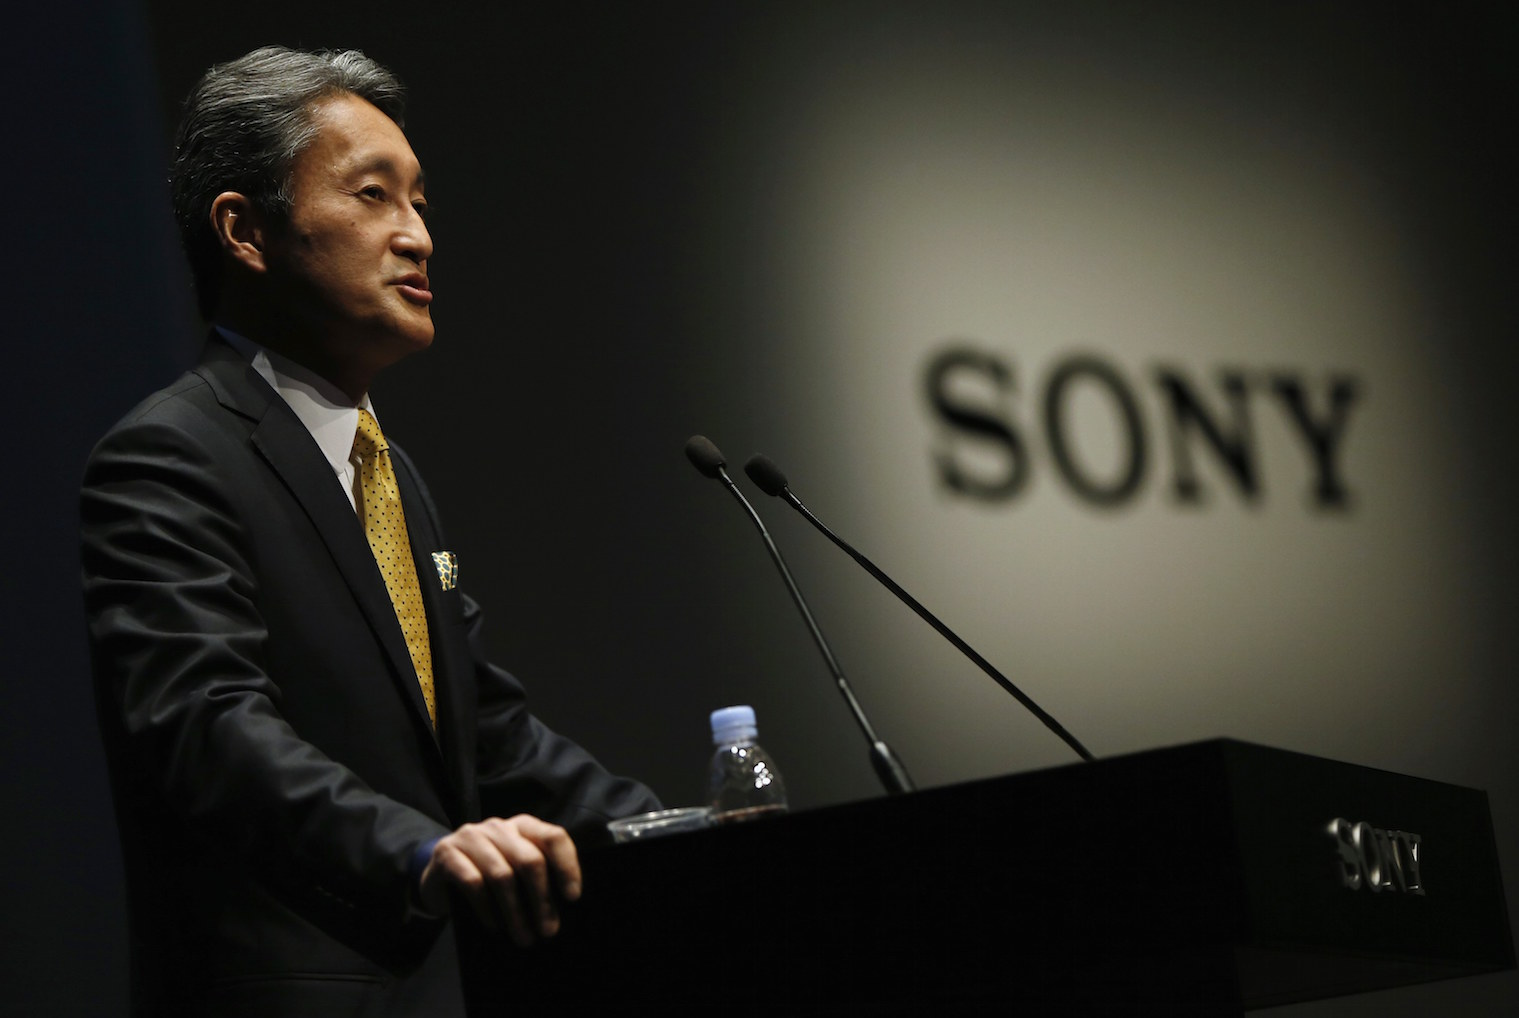 Sony's Sensor Domination Marches On as Record Profits Pour In